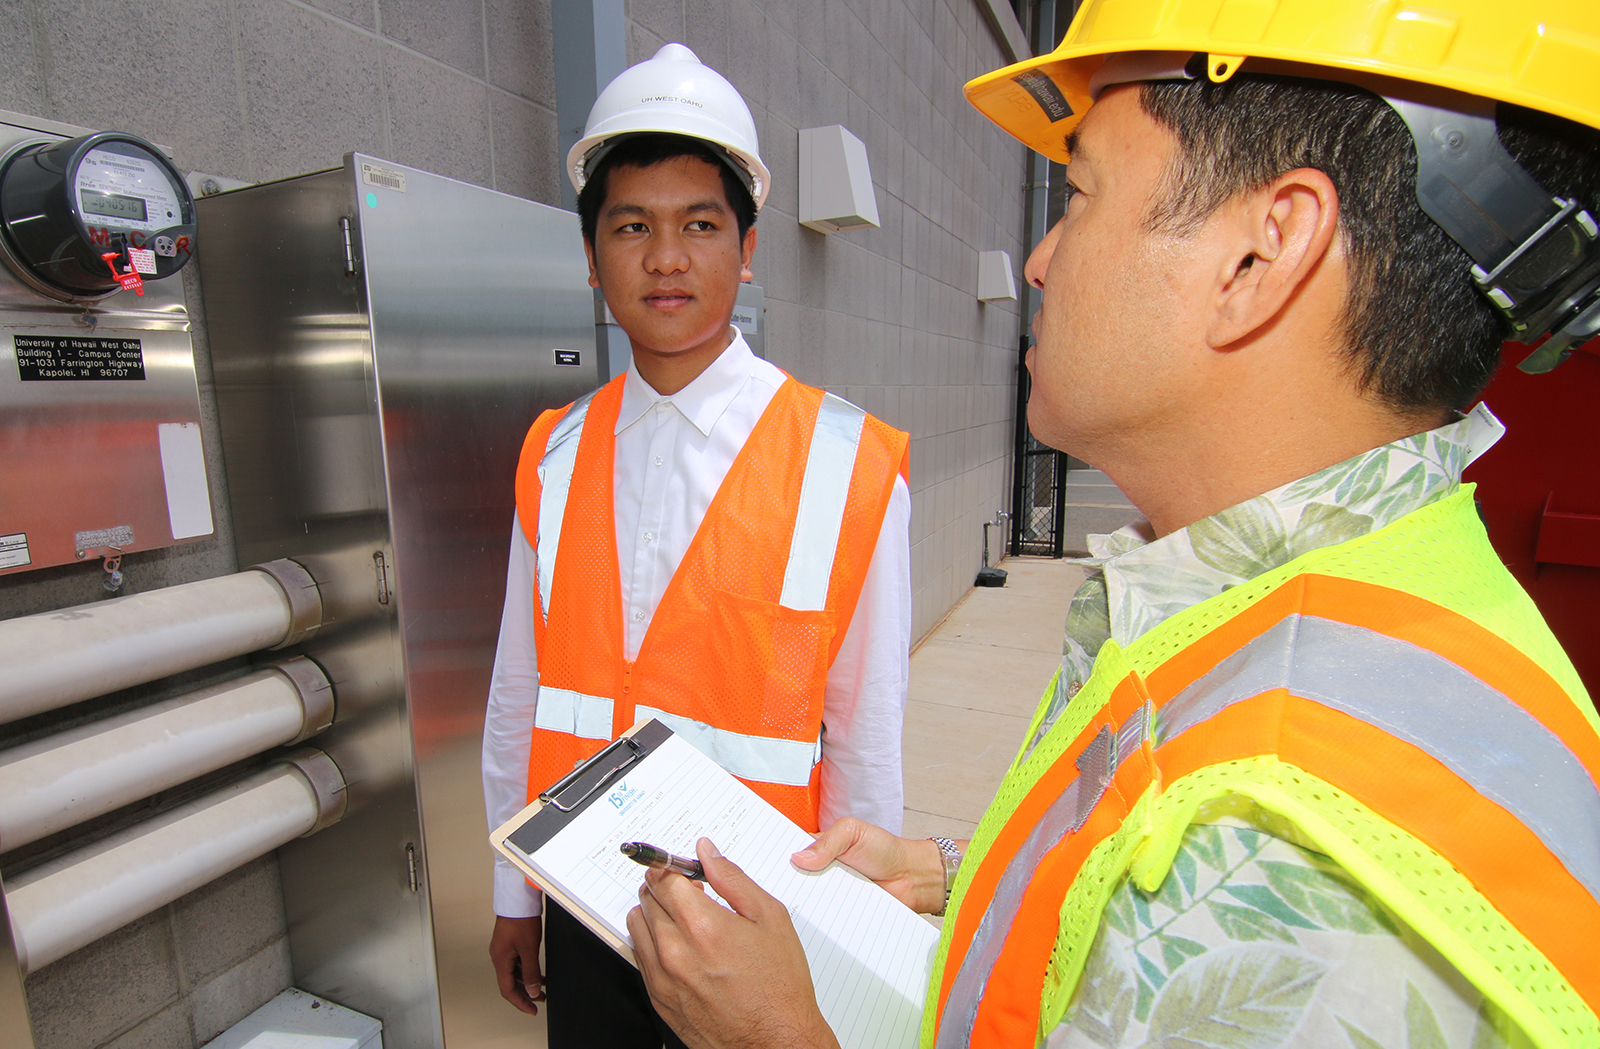 Facilities Management student getting instruction from a supervisor.